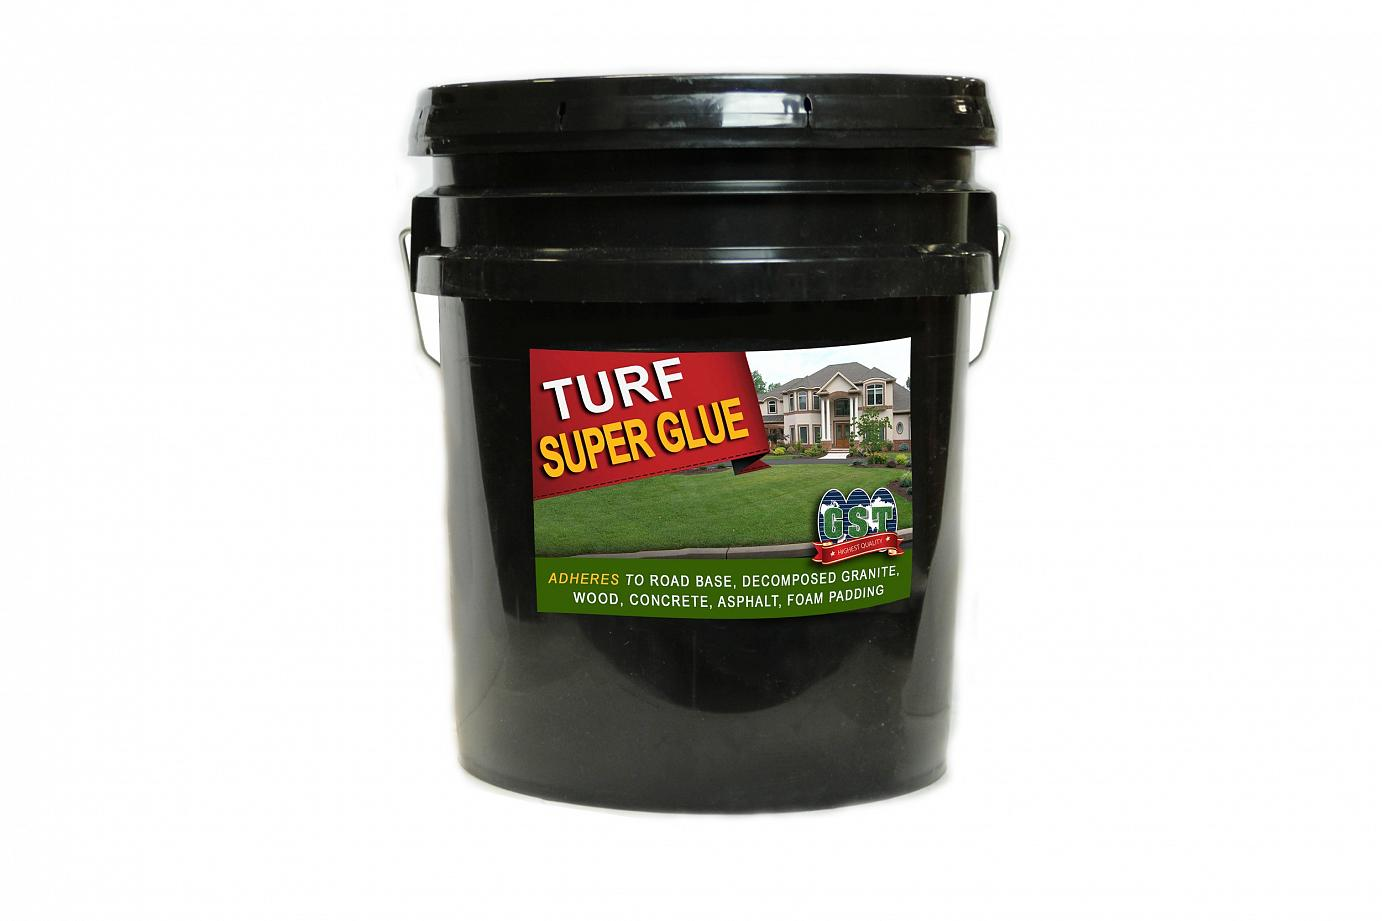 Turf Super Glue 5 Gallons Artificial Grass New York NY Garden Tool New York